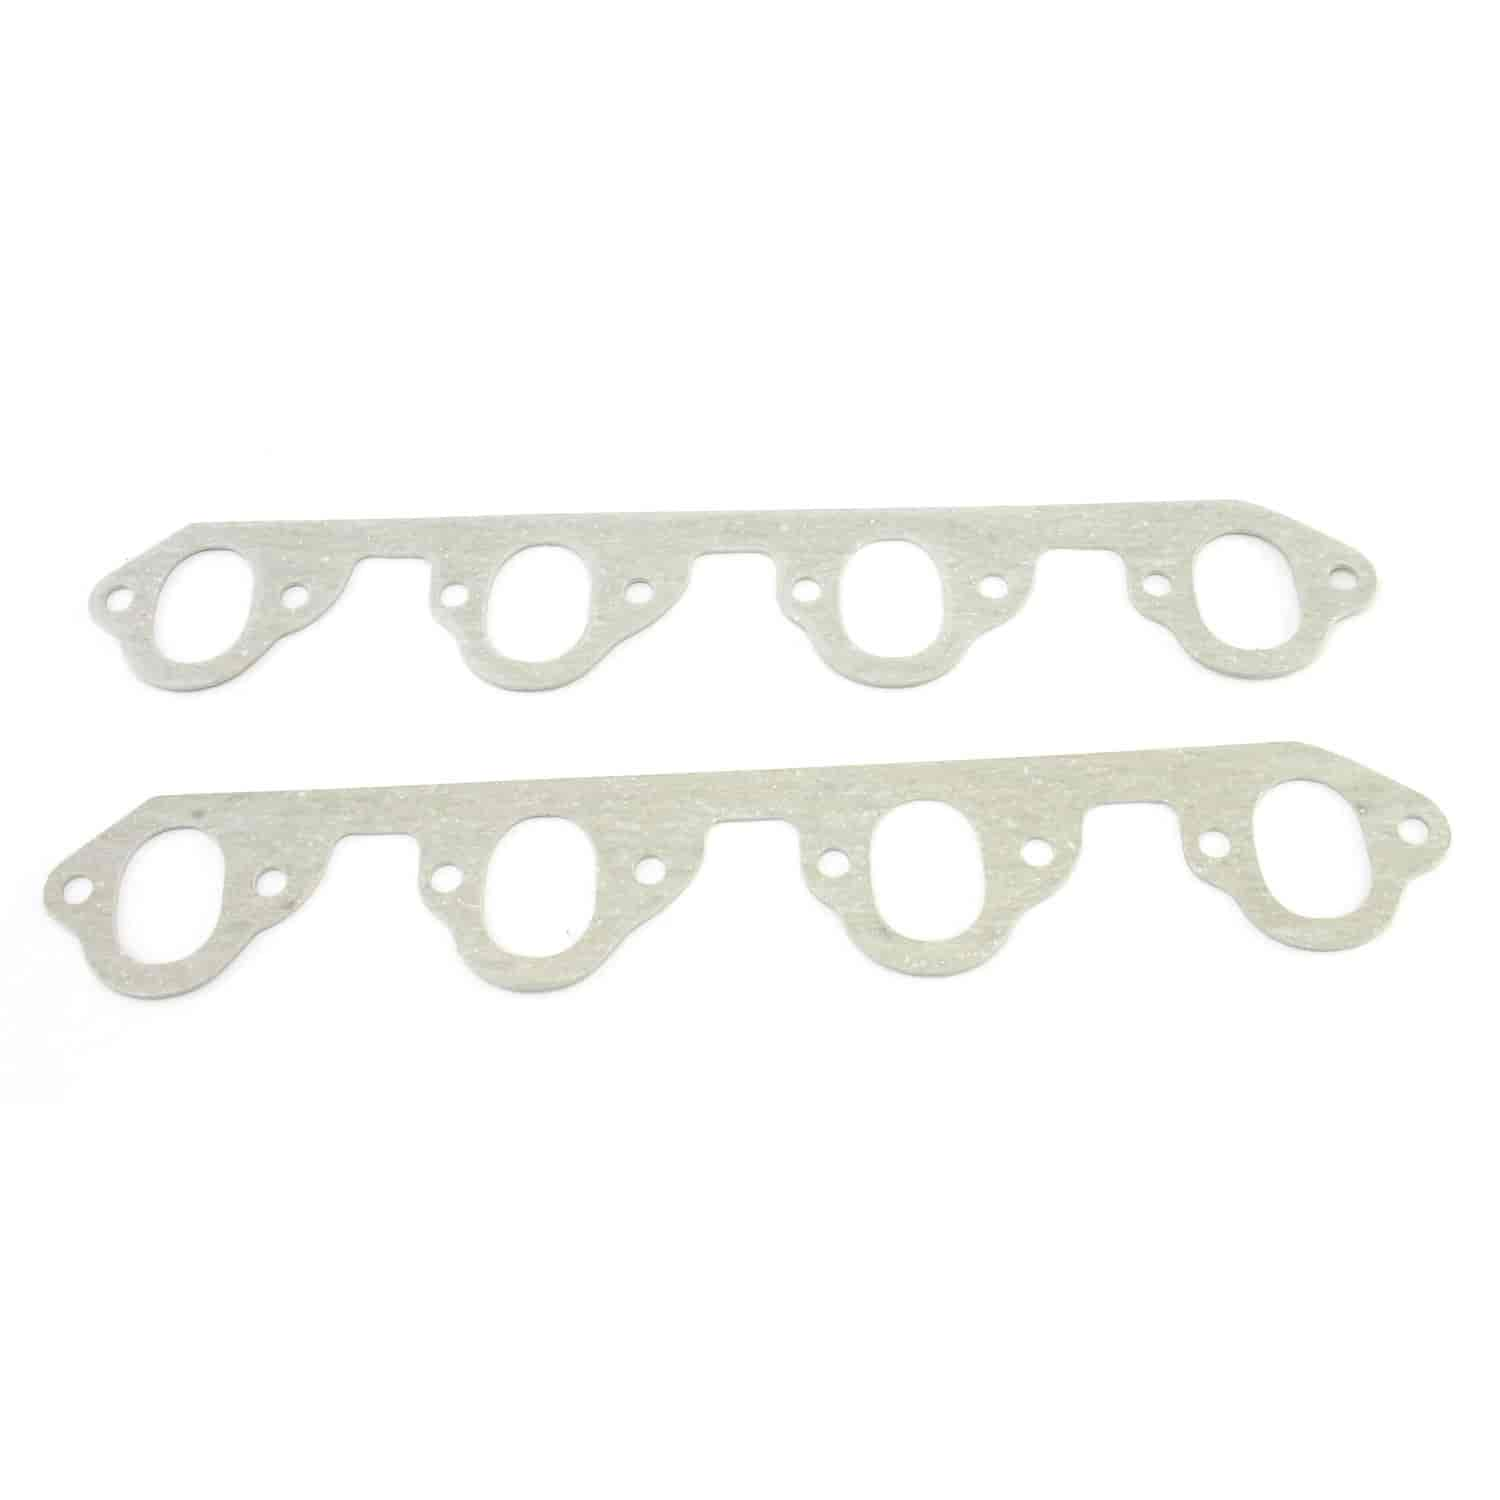 Patriot Exhaust H7591 - Patriot Exhaust Header Flange Gaskets